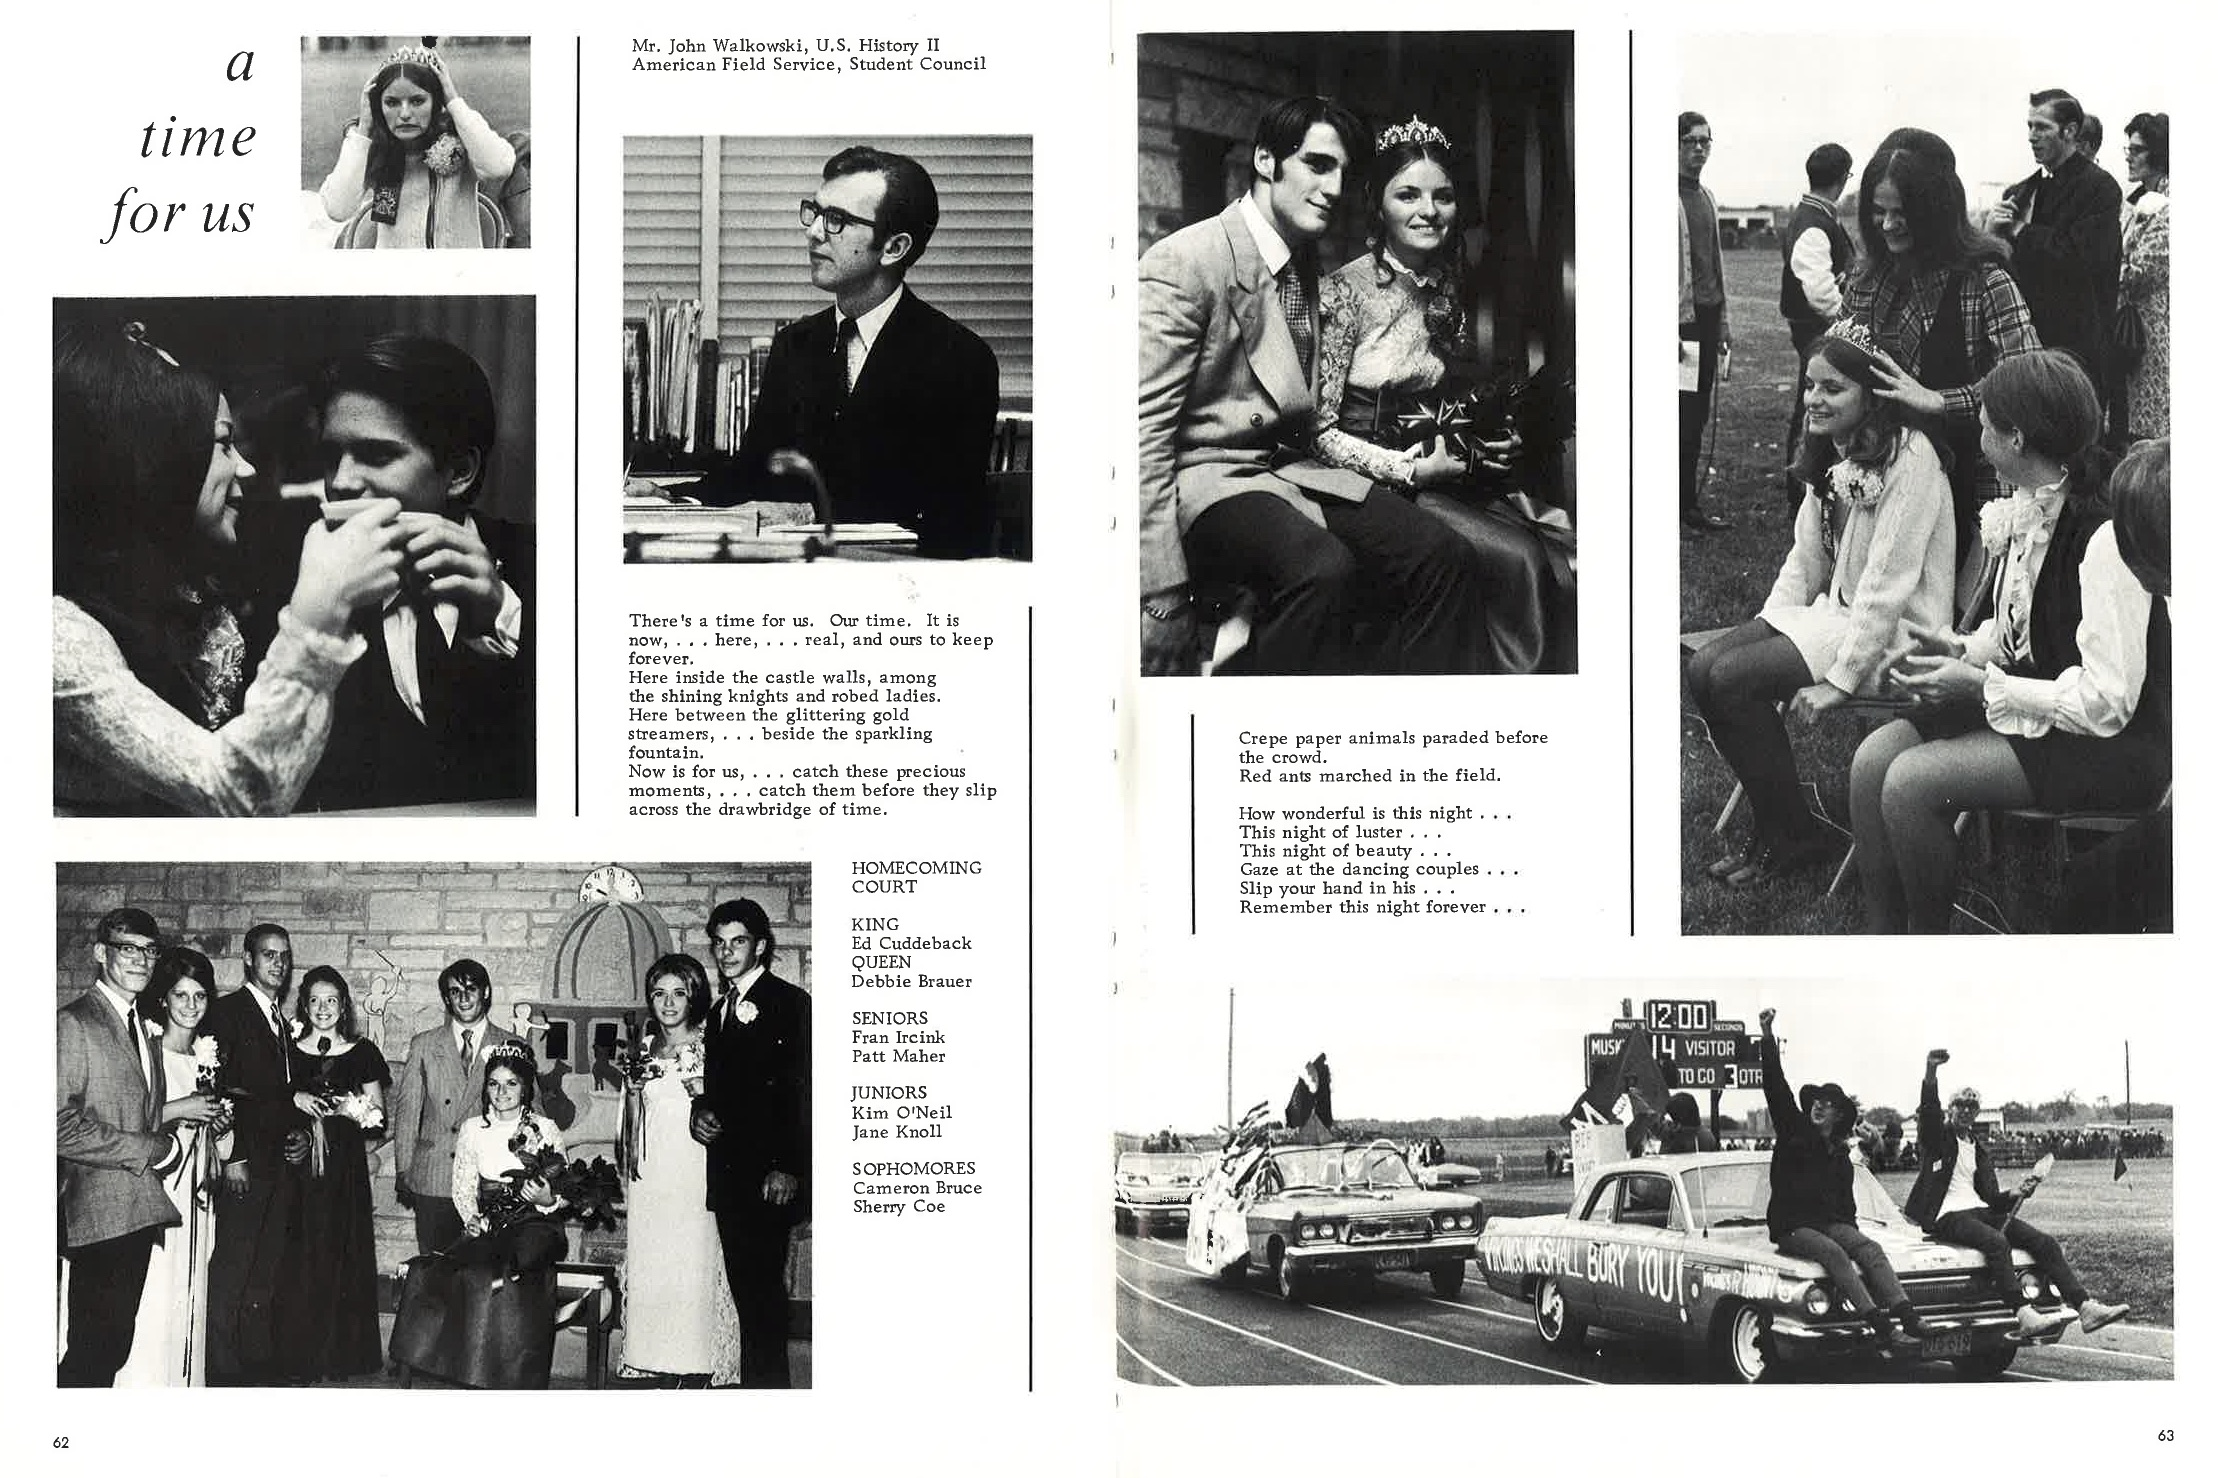 1970_Yearbook_62-63.jpg